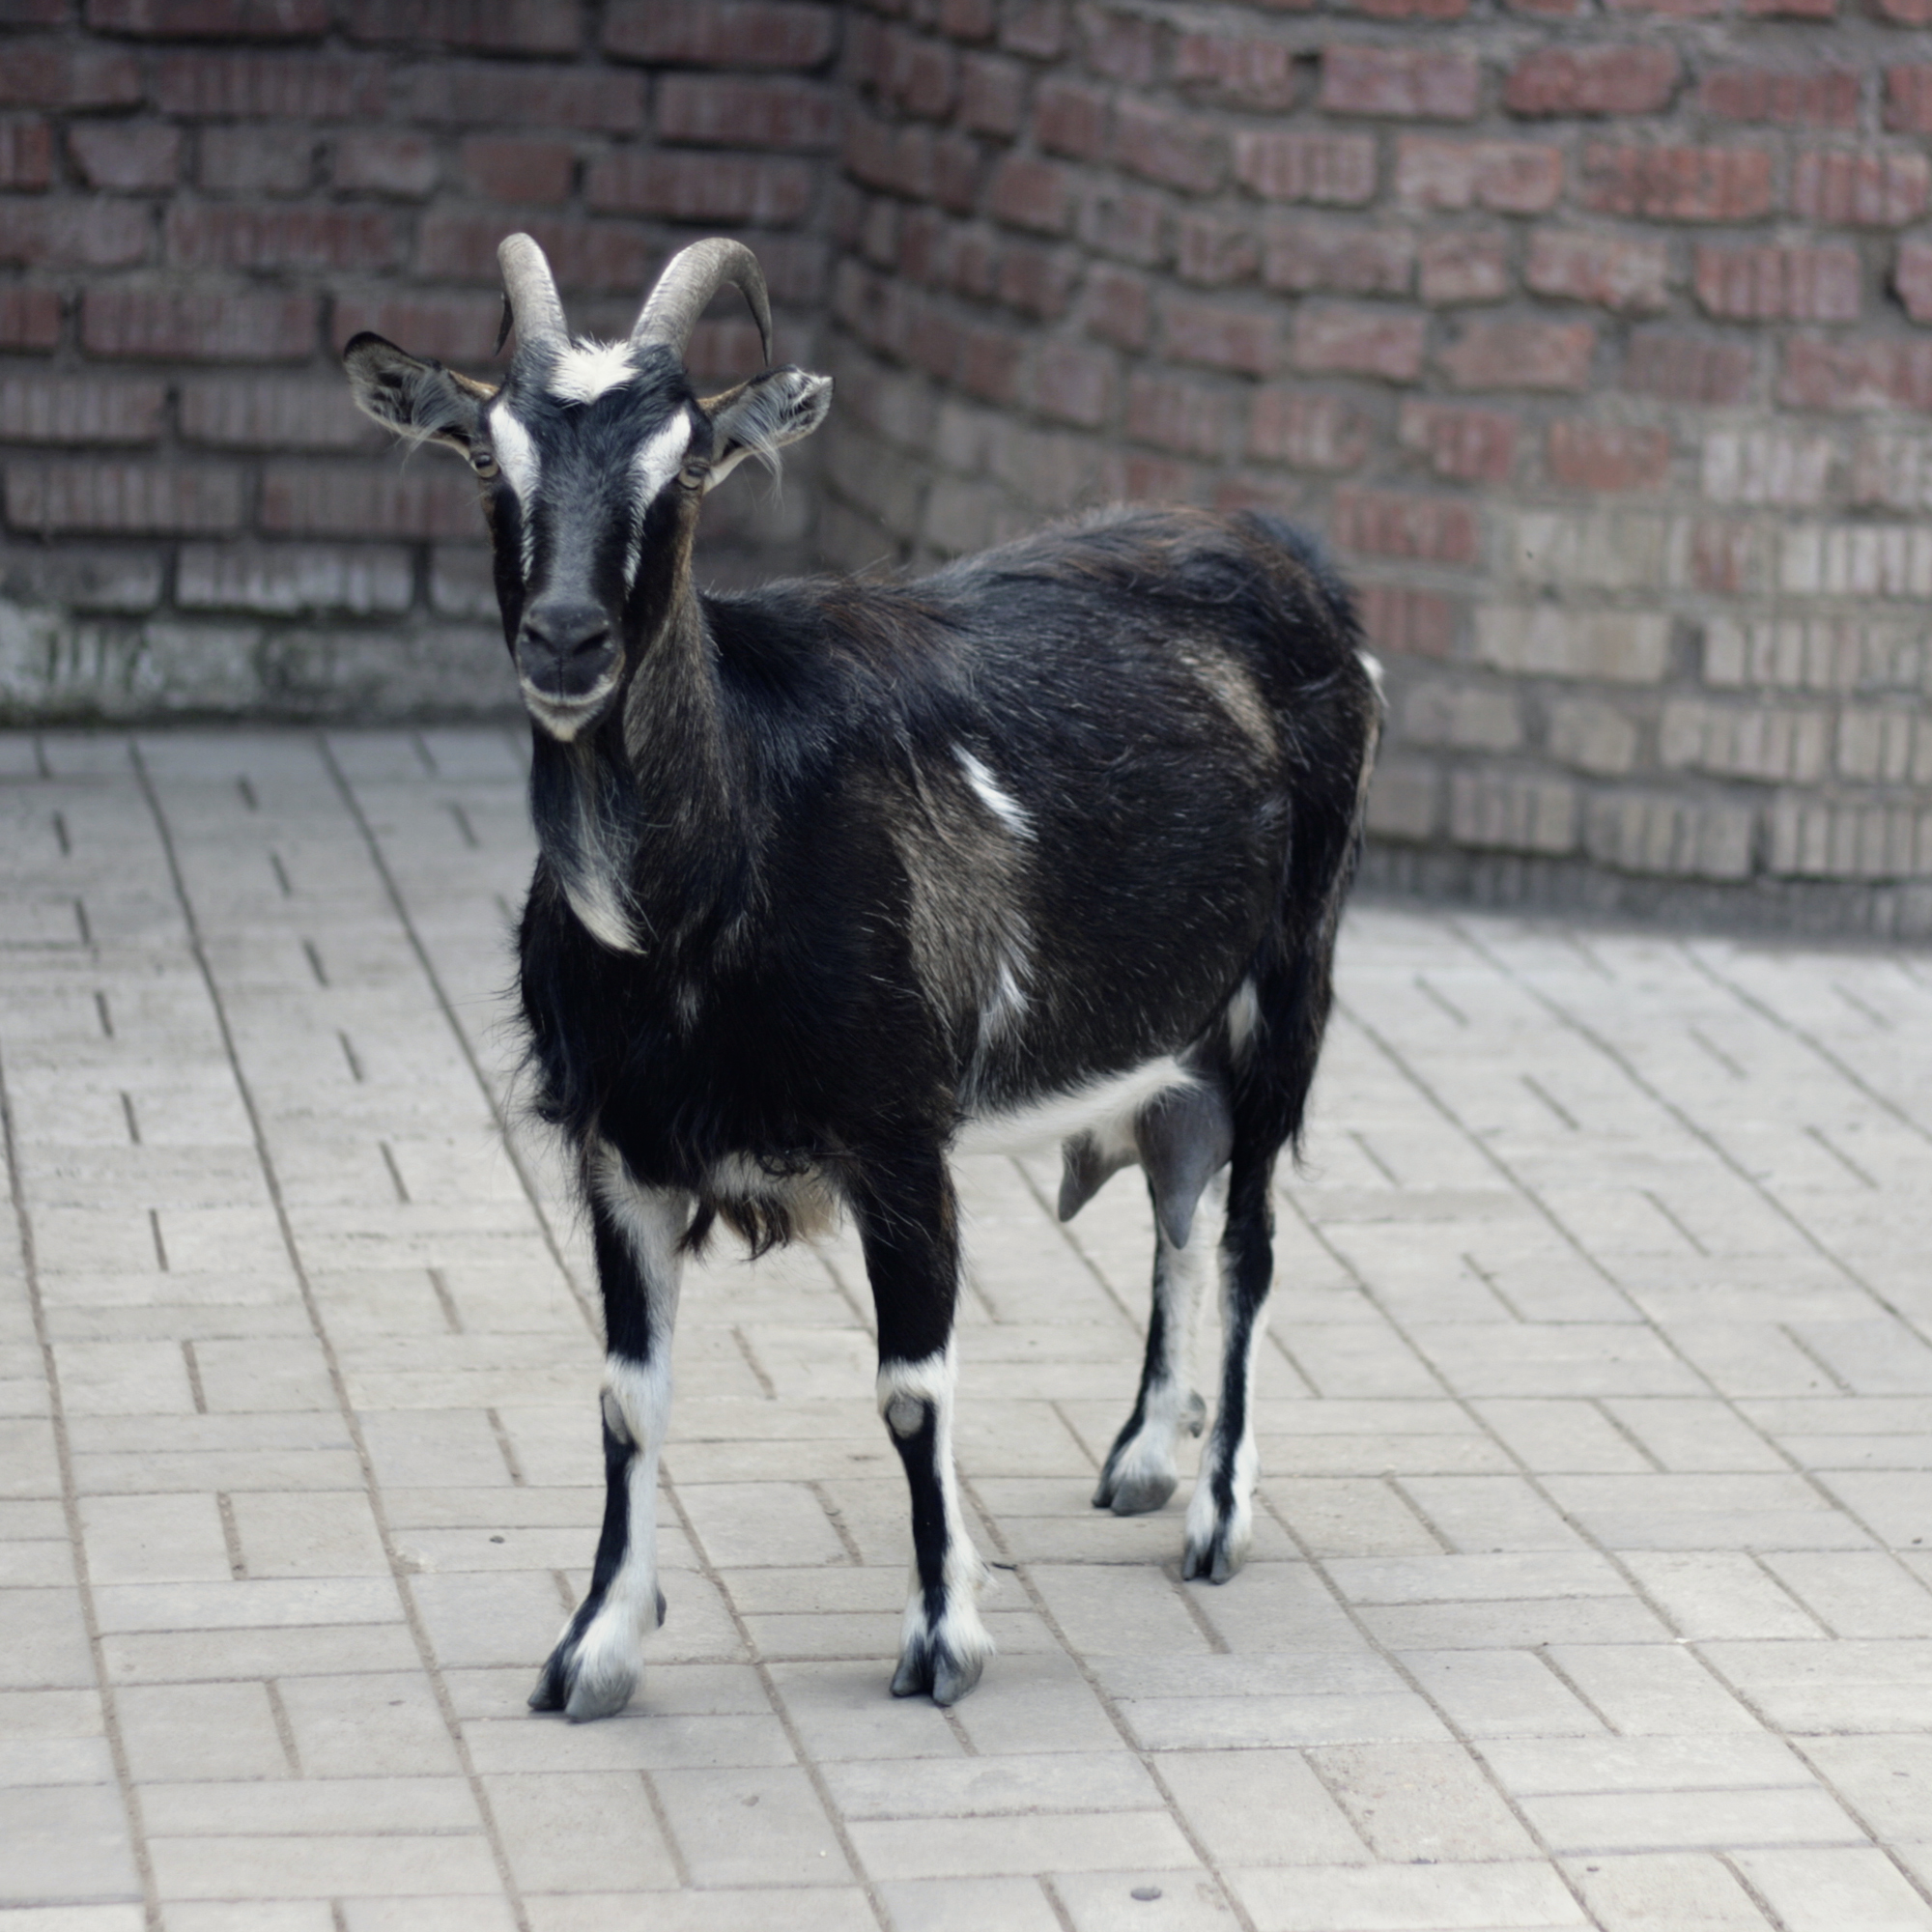 Goat, Animal, Horned, Mammal, Outdoor, HQ Photo